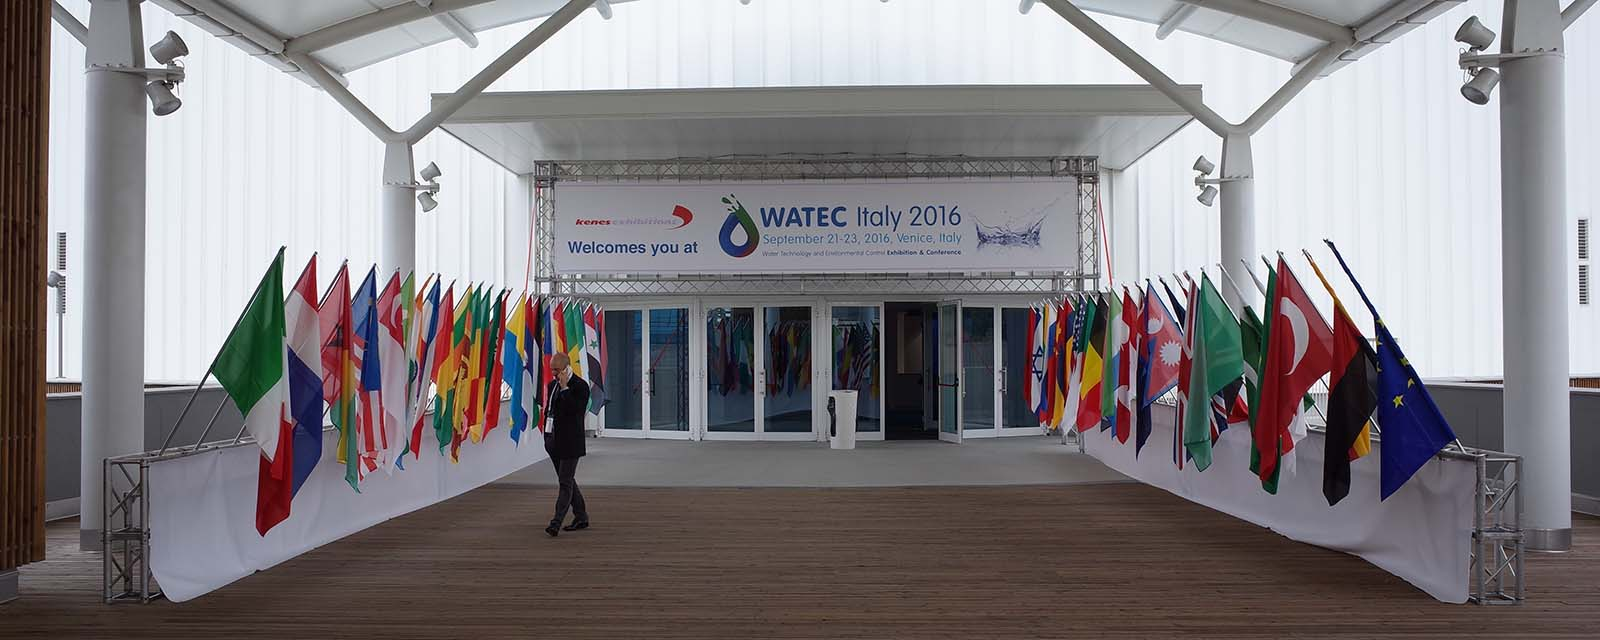 congresso_watec